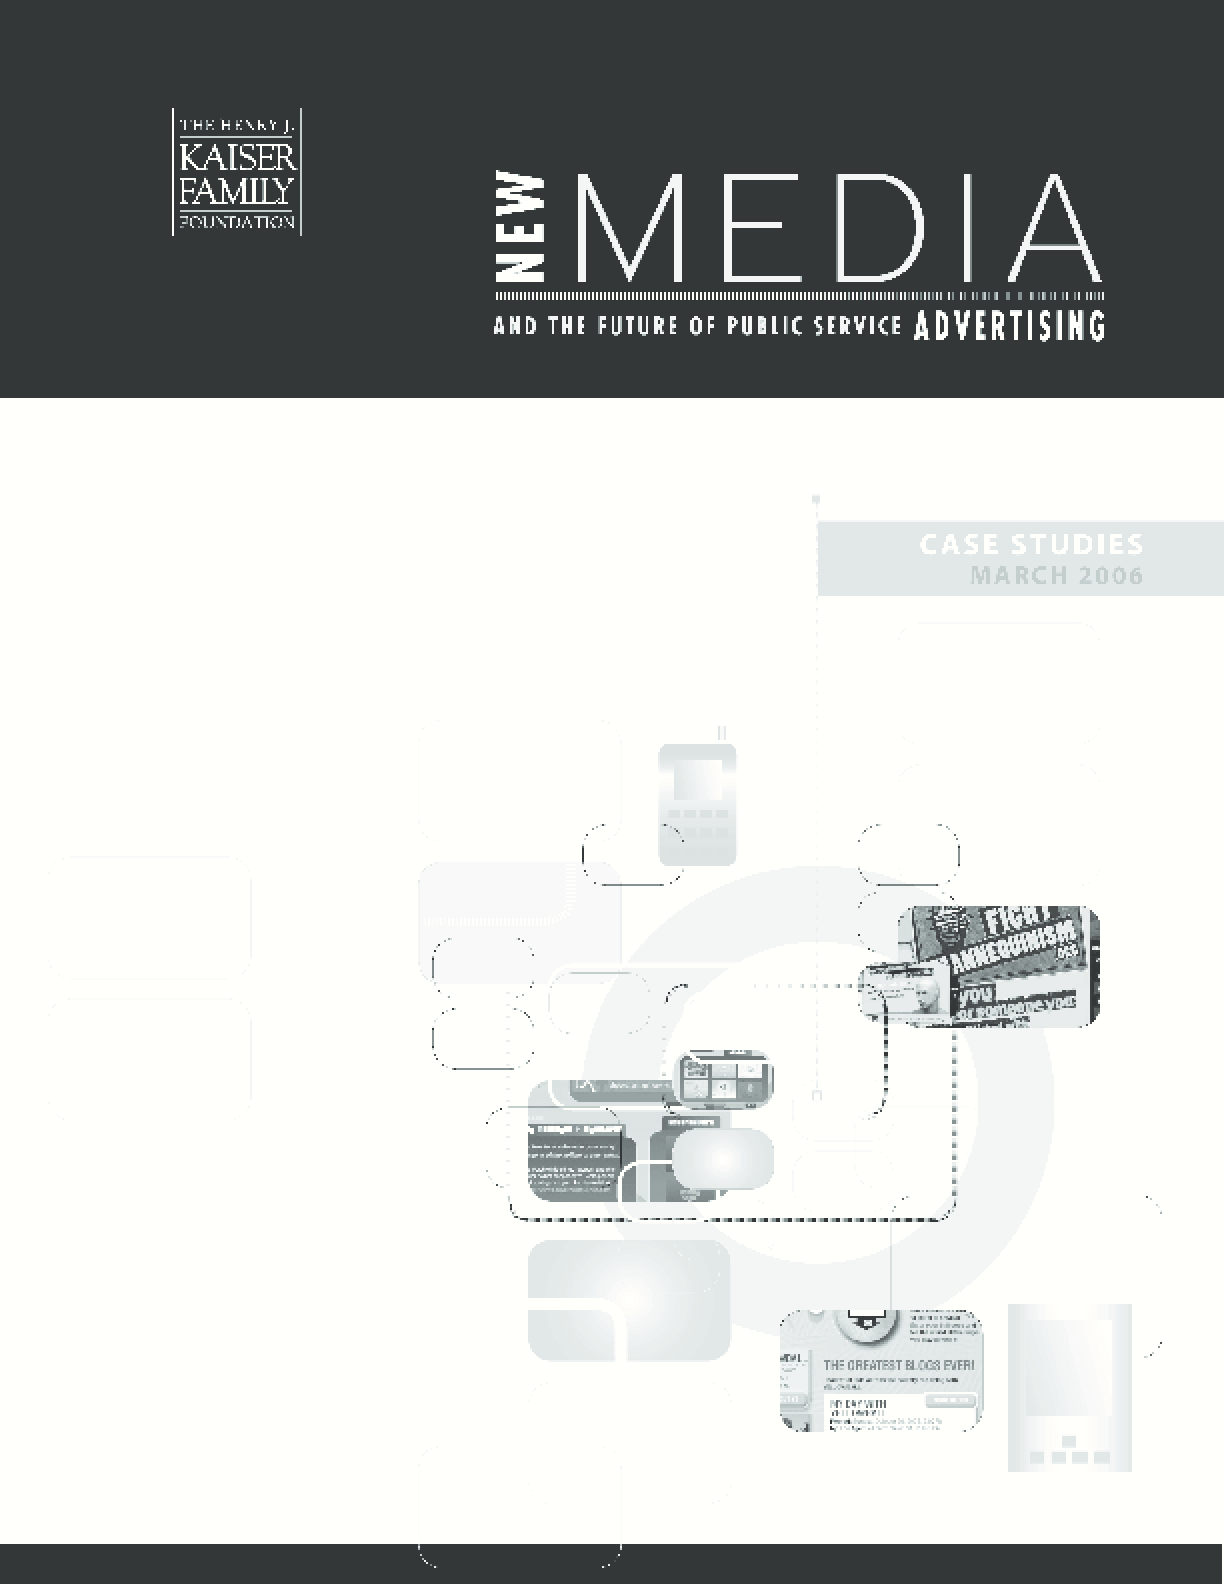 New Media and the Future of Public Service Advertising: Case Studies